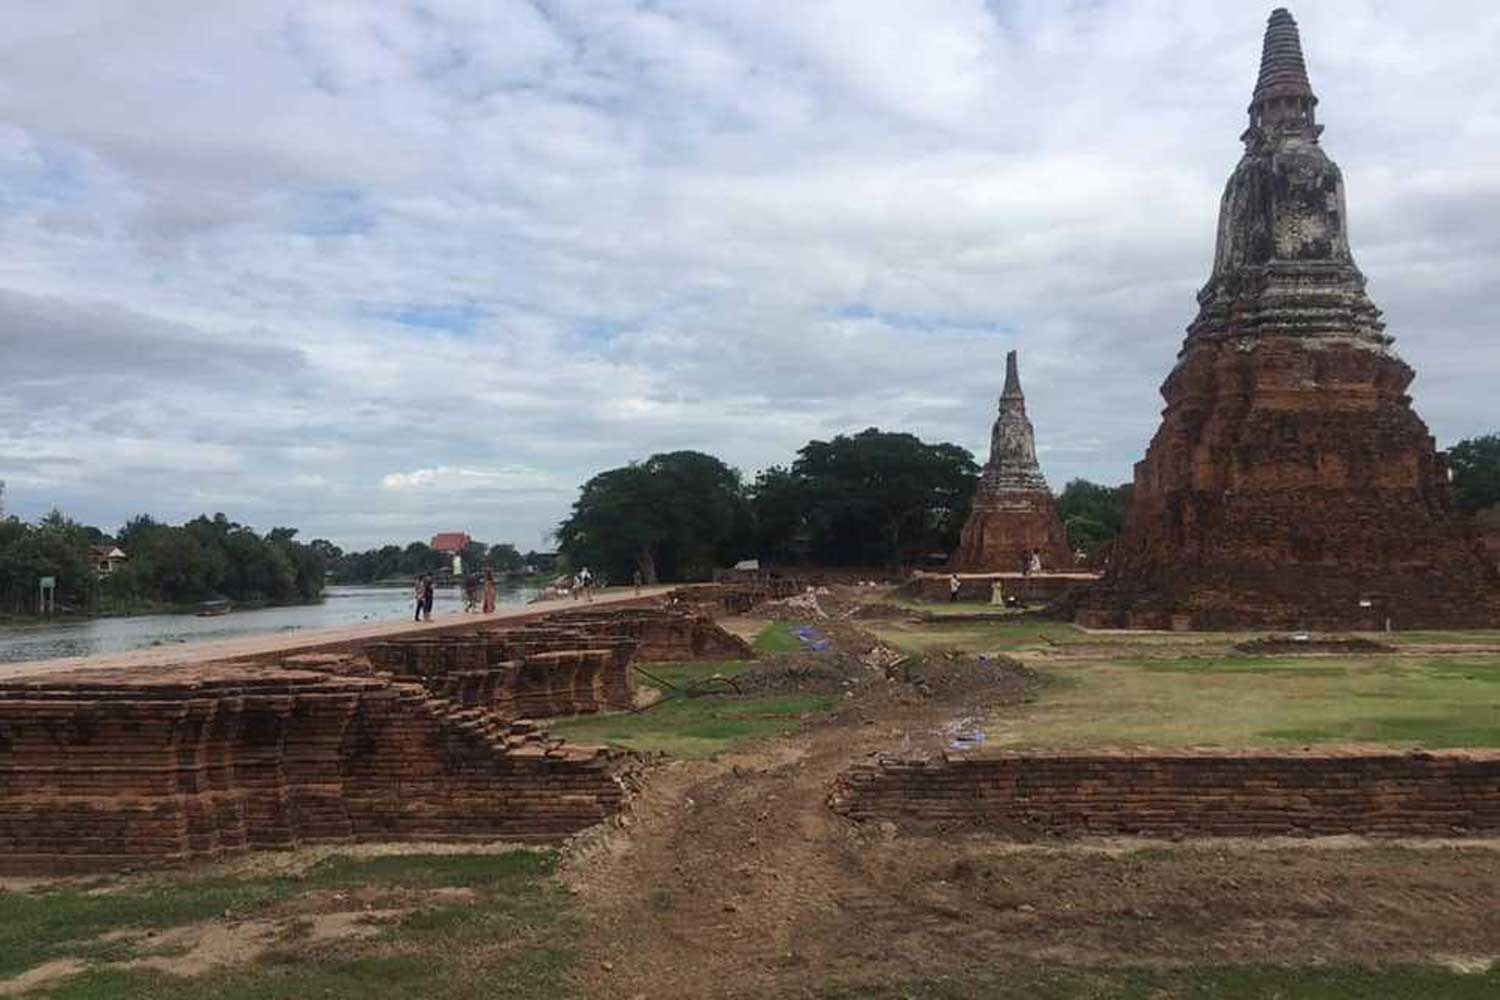 Part of this brick wall at historical Wat Chaiwatthanaram in Phra Nakhon Si Ayutthaya district of Ayutthaya province was dismantled during installation of an underground electrical cable. (Photo by Suthon Pongpao)